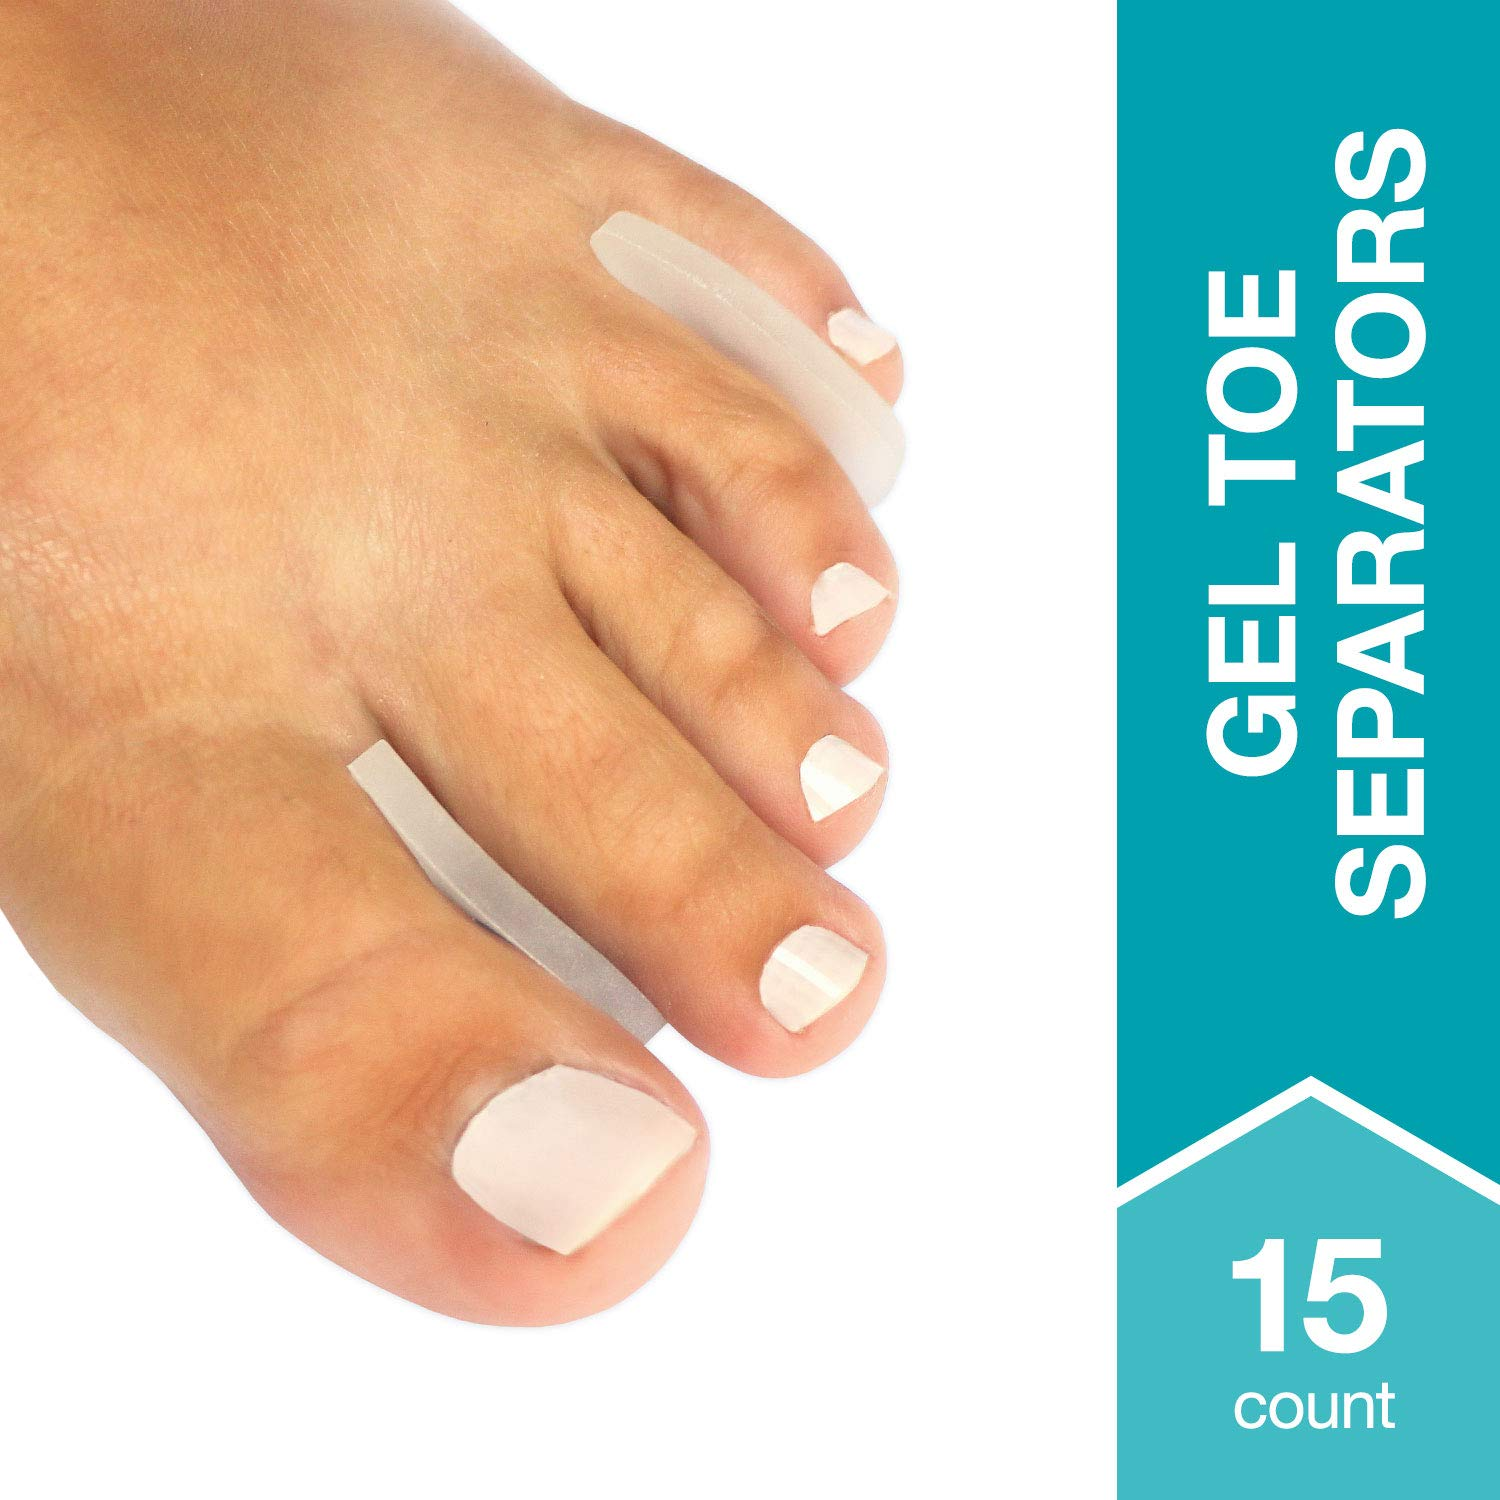 Steins Gel Toe Spacers, Callus Pads, Gel Toe Separators, Fits Small to Medium Toes, Clear, 15 Count by Steins